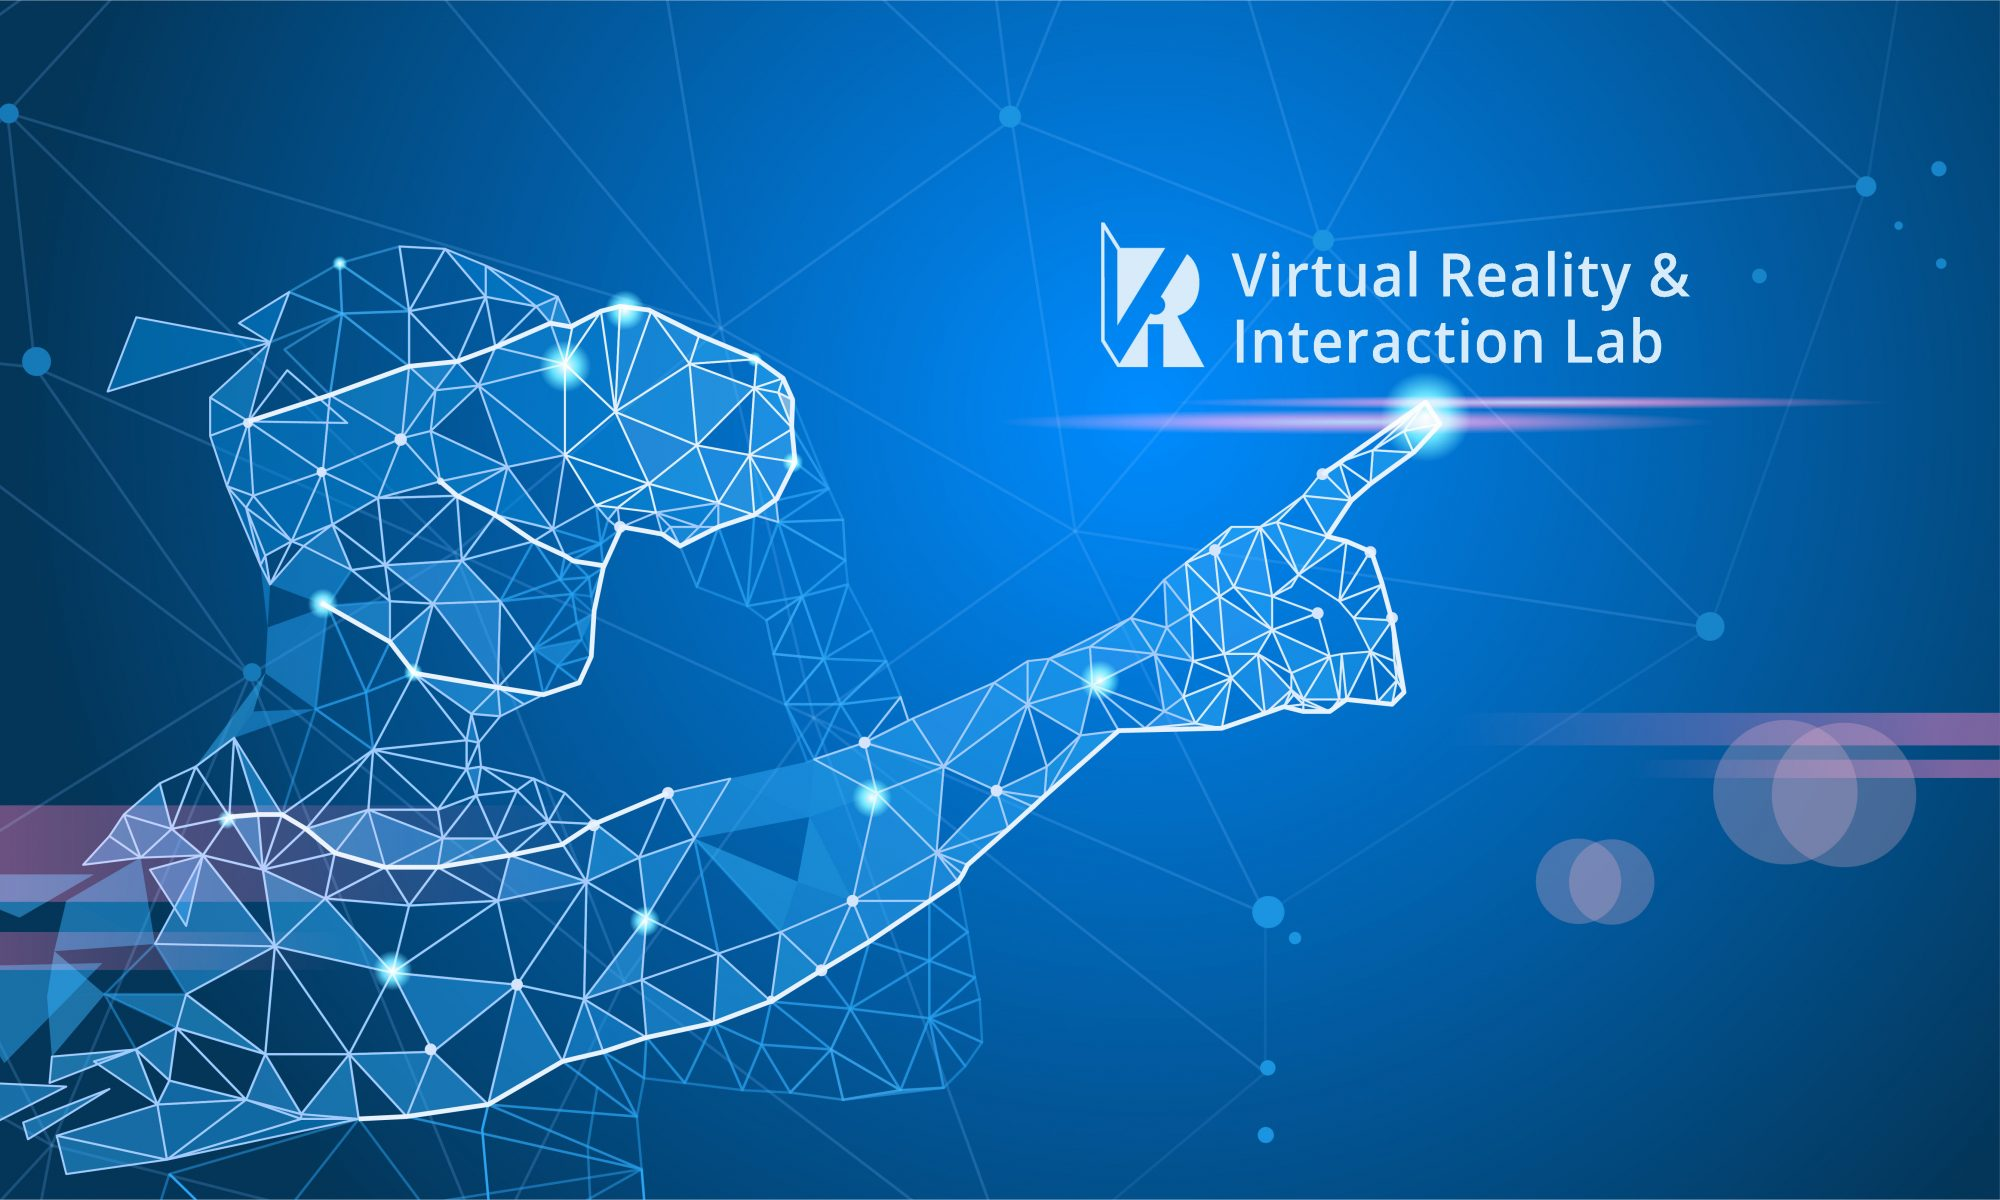 Virtual Reality and Interaction